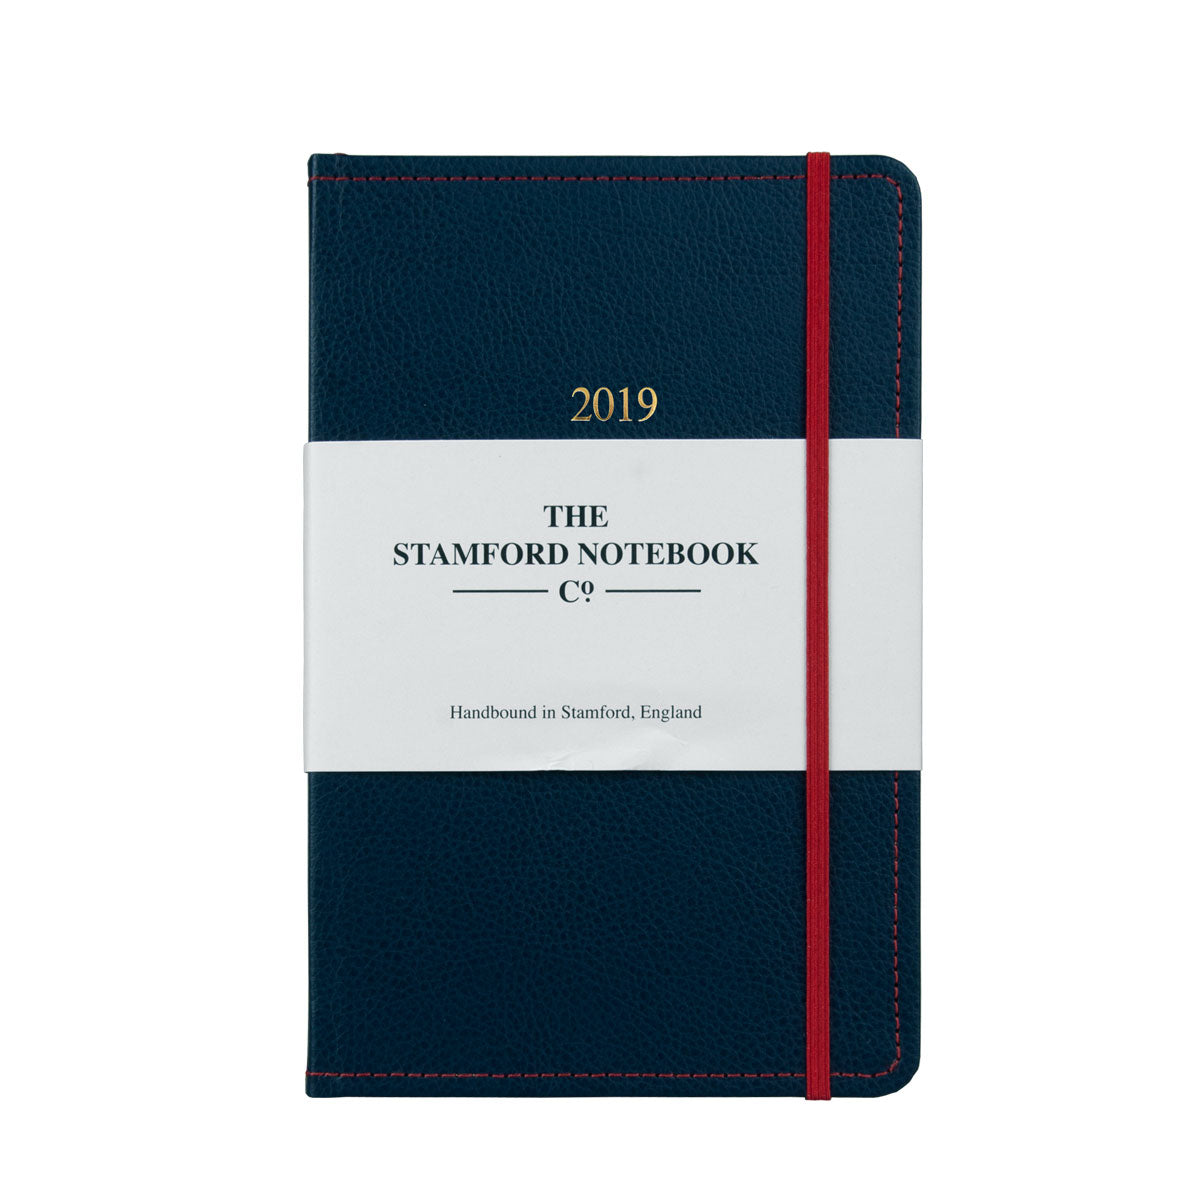 Marine Blue leather diary with red stitching